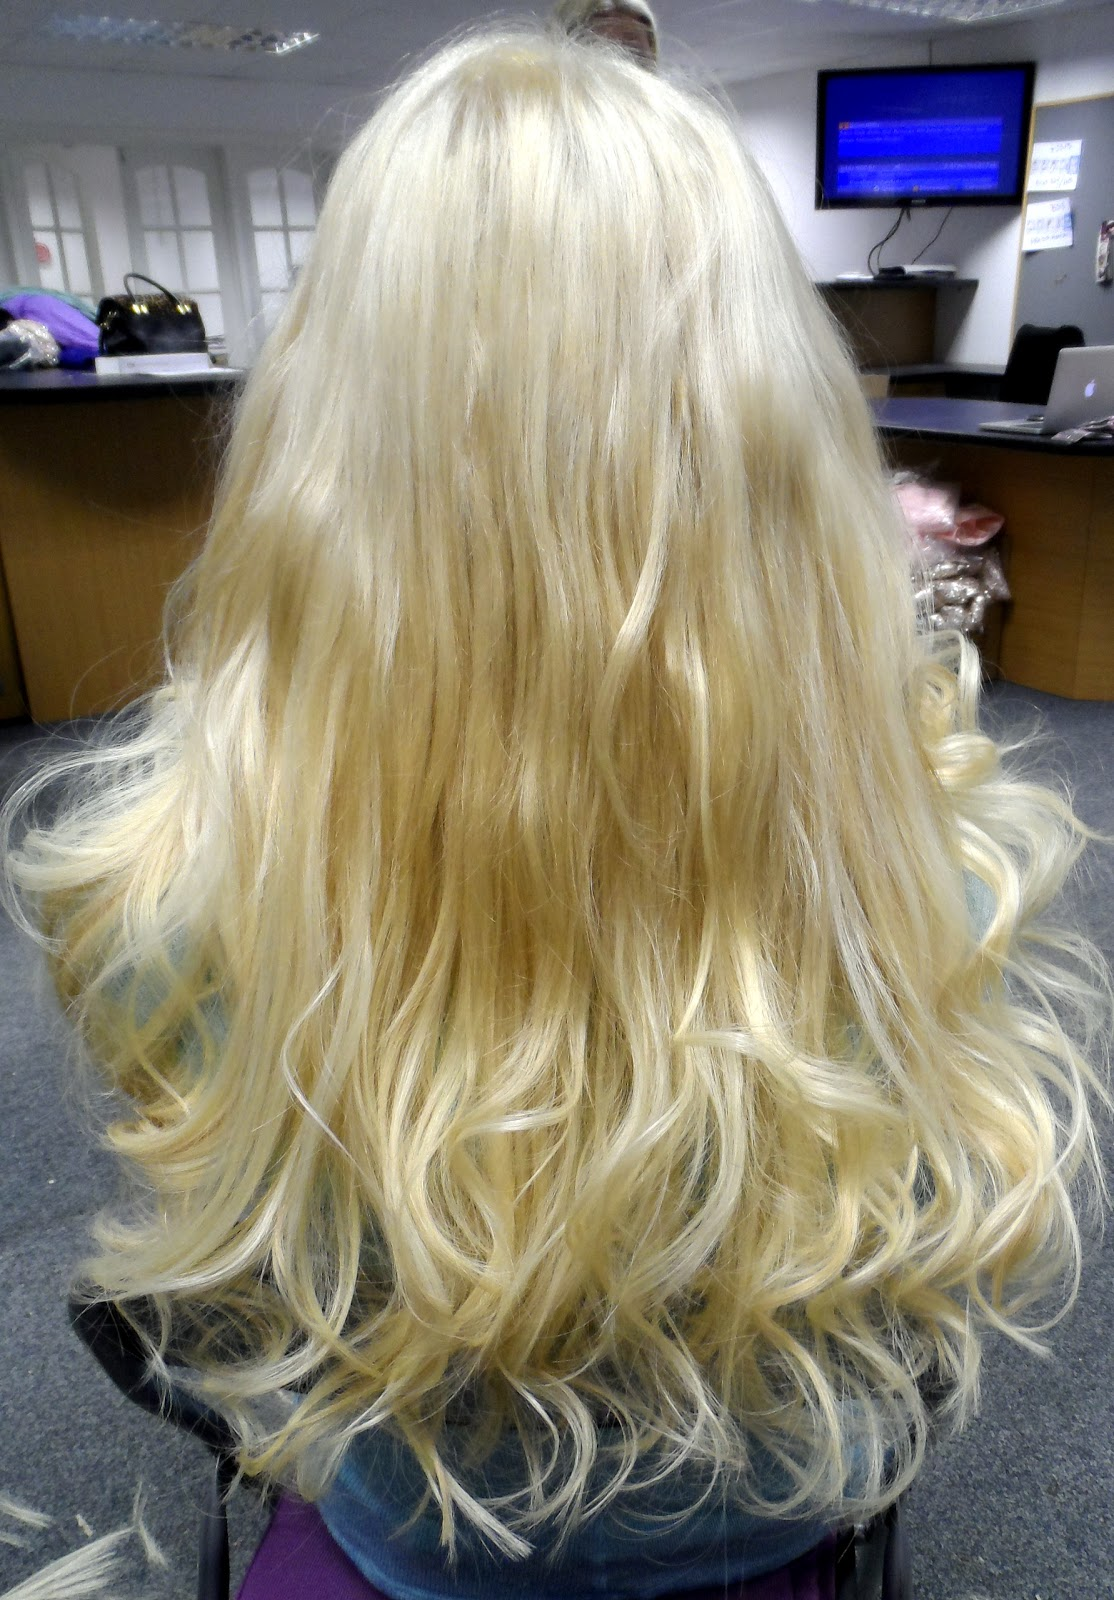 Emtalks The Best Hair On The Market Bonded Hair Extensions Review